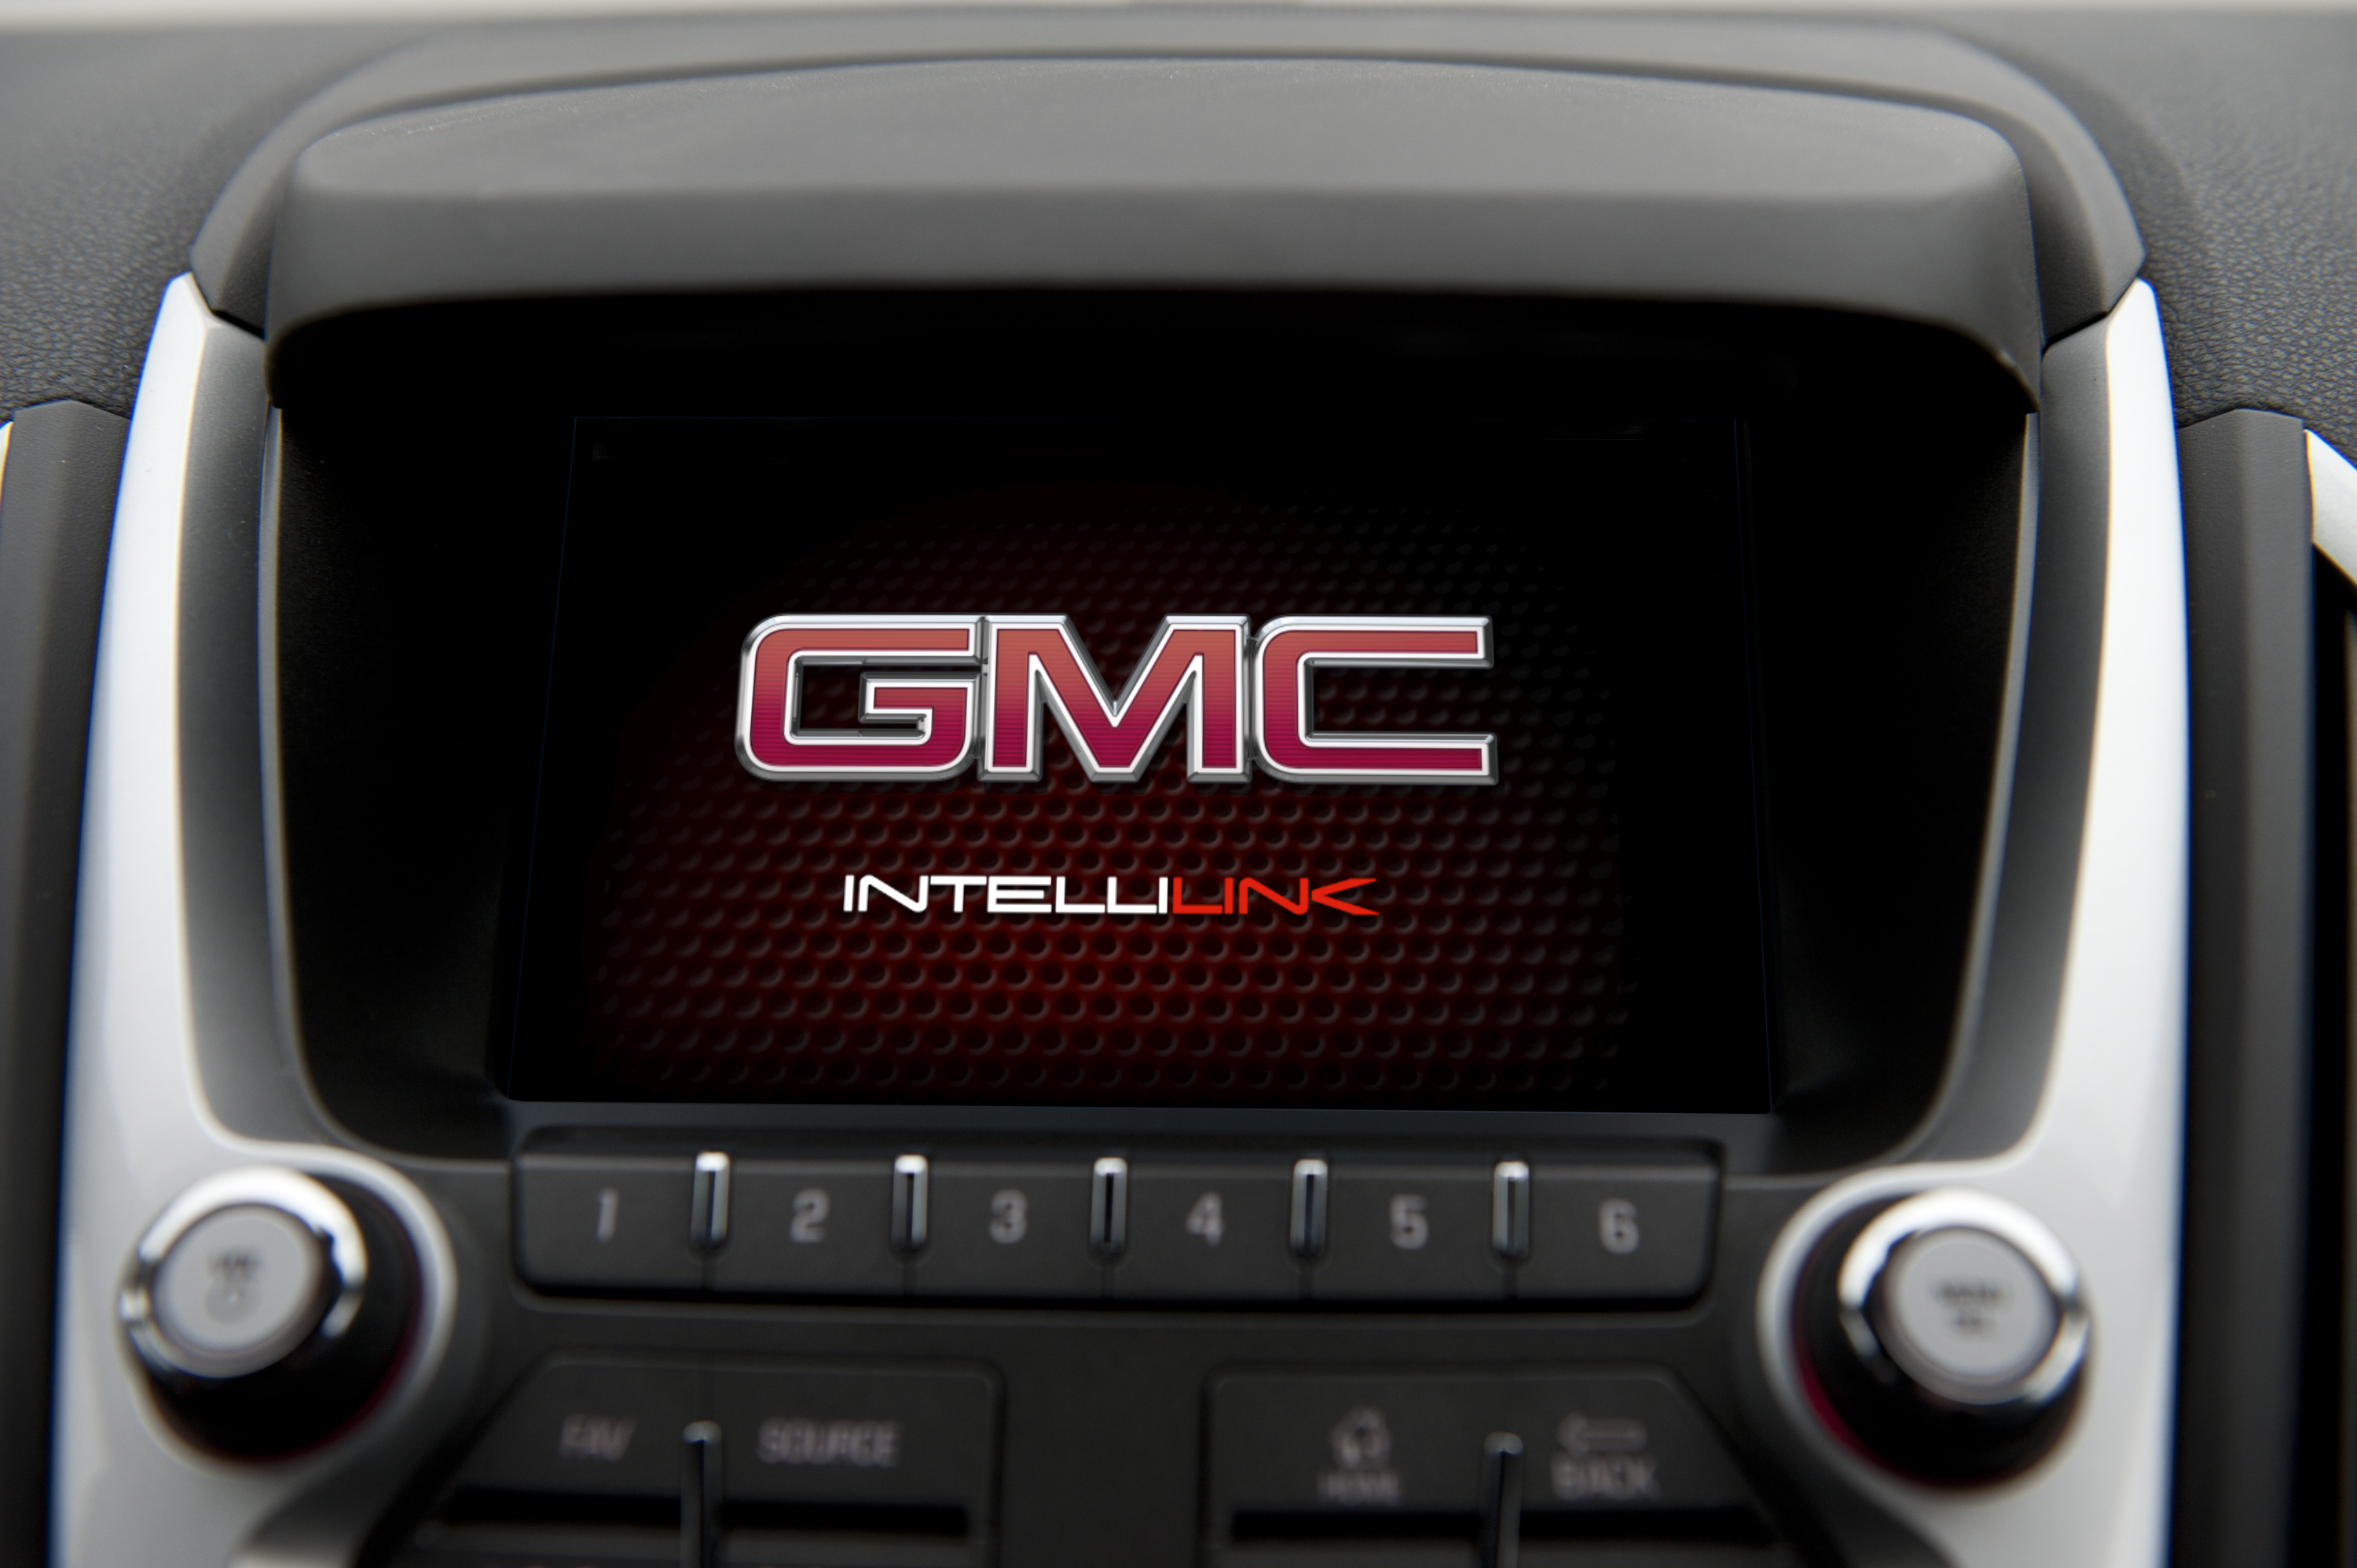 gmc infotainment system navigation manual open source user manual u2022 rh dramatic varieties com 2010 GMC Acadia Inside 2010 GMC Acadia Replacement Light